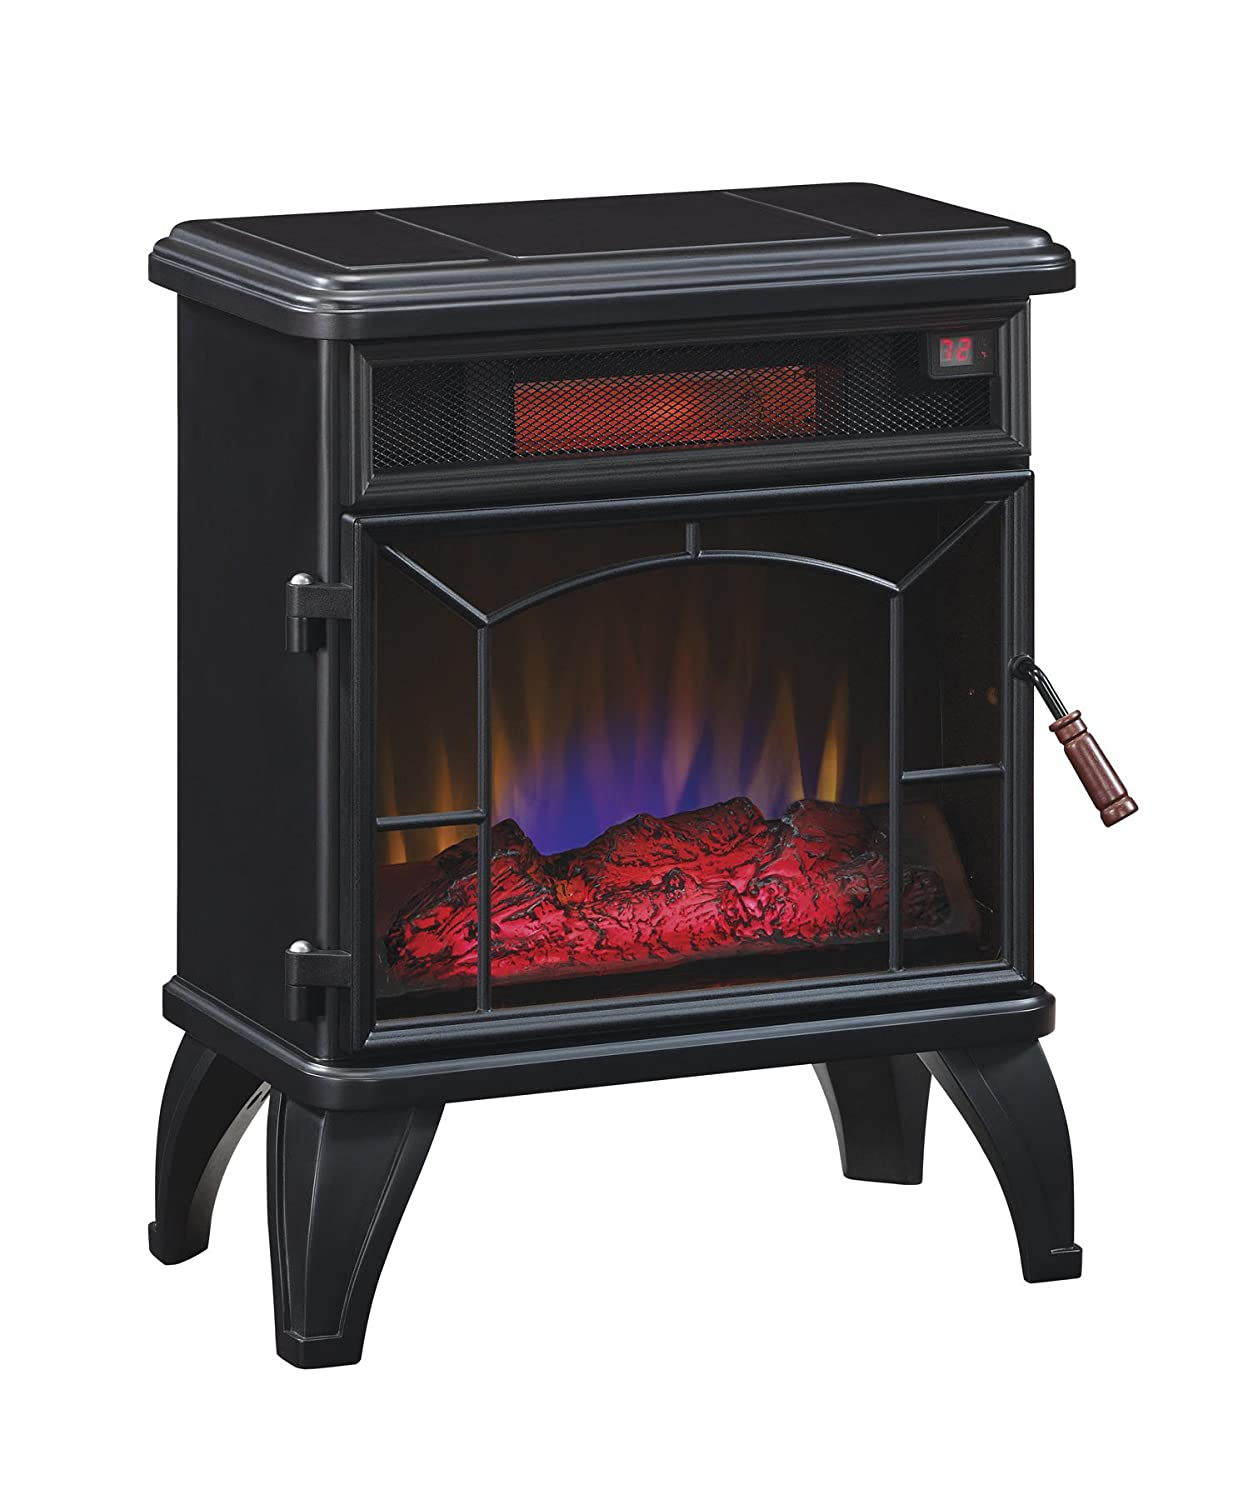 amazon com duraflame dfi 550 0 mason freestanding infrared quartz